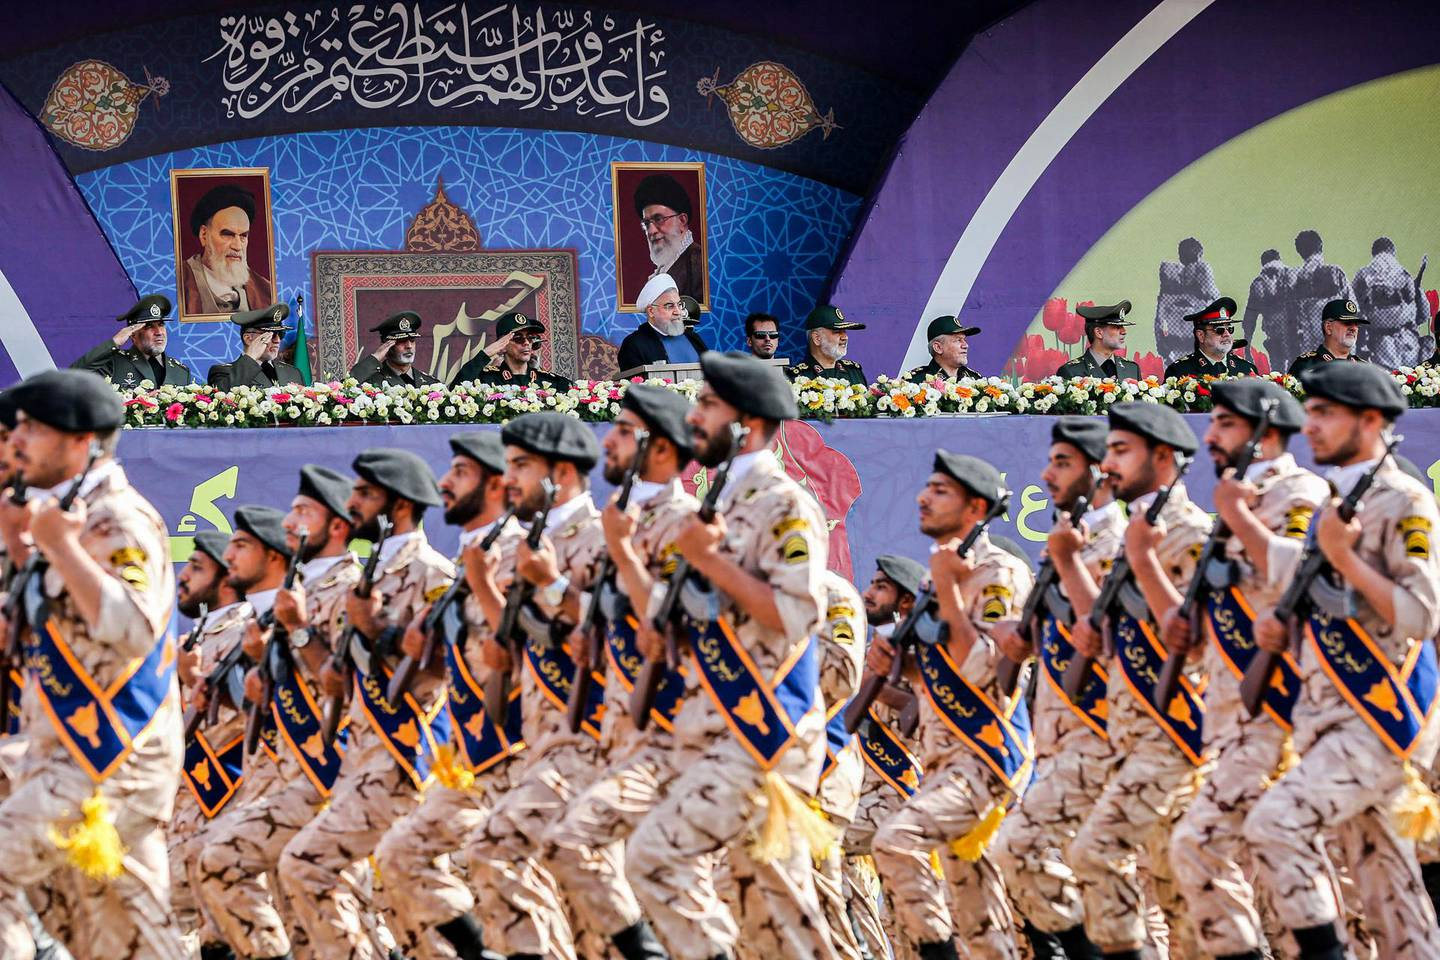 """A handout picture provided by the Iranian presidency on September 22, 2019 shows President Hassan Rouhani (C) and other top military commanders watching members the Islamic Revolutionary Guard Corps (IRGC) marching past during the annual """"Sacred Defence Week"""" military parade marking the anniversary of the outbreak of the devastating 1980-1988 war with Saddam Hussein's Iraq, in the capital Tehran. - Rouhani said on September 22 that the presence of foreign forces creates """"insecurity"""" in the Gulf, after the US ordered the deployment of more troops to the region. """"Foreign forces can cause problems and insecurity for our people and for our region,"""" Rouhani said in a televised speech at the annual military parade, adding that Iran would present to the UN a regional cooperation plan for peace. (Photo by - / Iranian Presidency / AFP) / === RESTRICTED TO EDITORIAL USE - MANDATORY CREDIT """"AFP PHOTO / HO / IRANIAN PRESIDENCY"""" - NO MARKETING NO ADVERTISING CAMPAIGNS - DISTRIBUTED AS A SERVICE TO CLIENTS ==="""